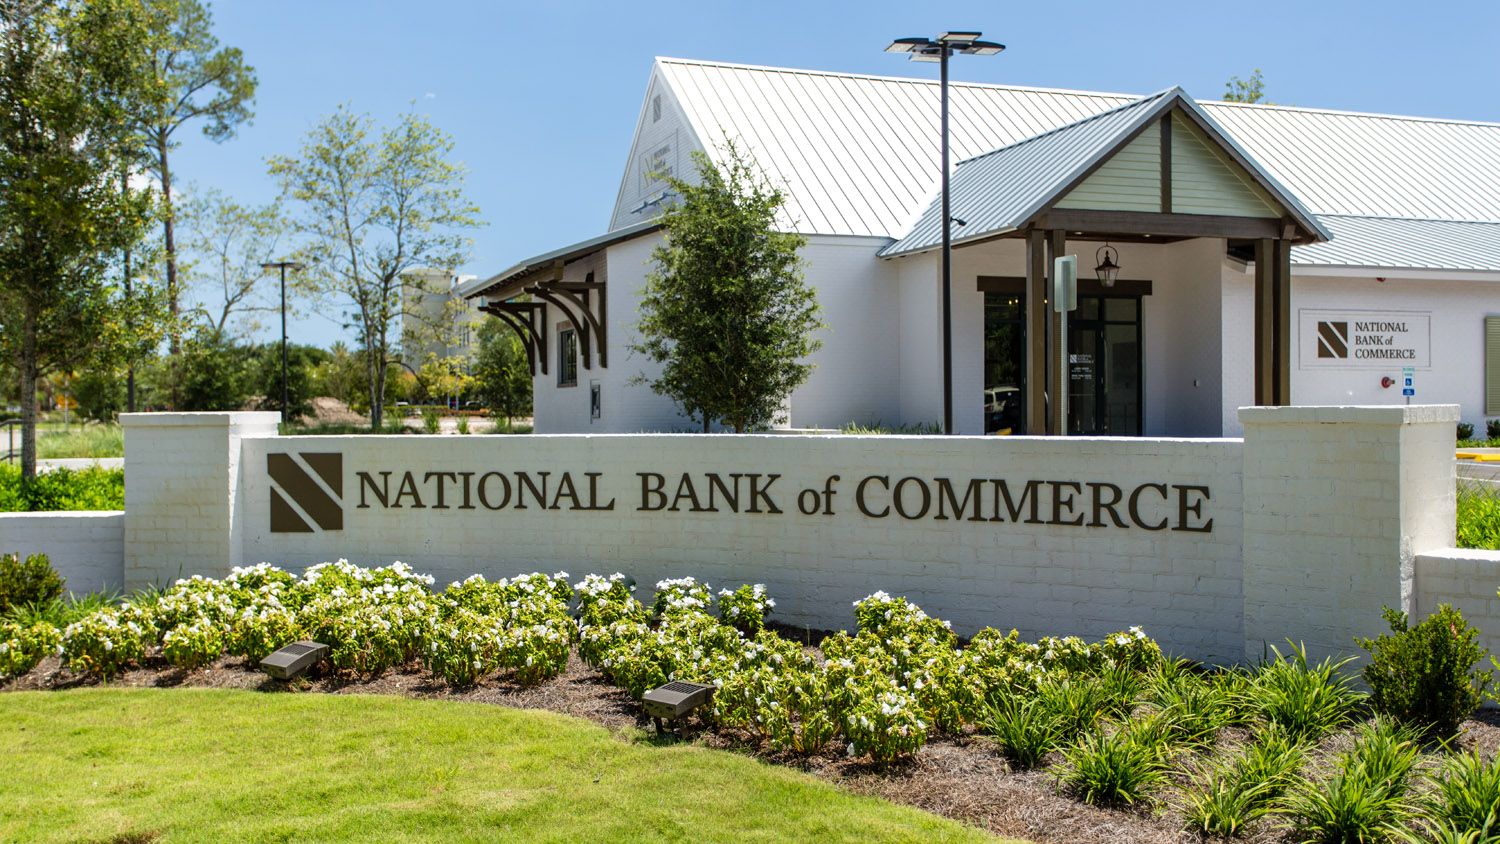 National Bank of Commerce, Gulf Shores